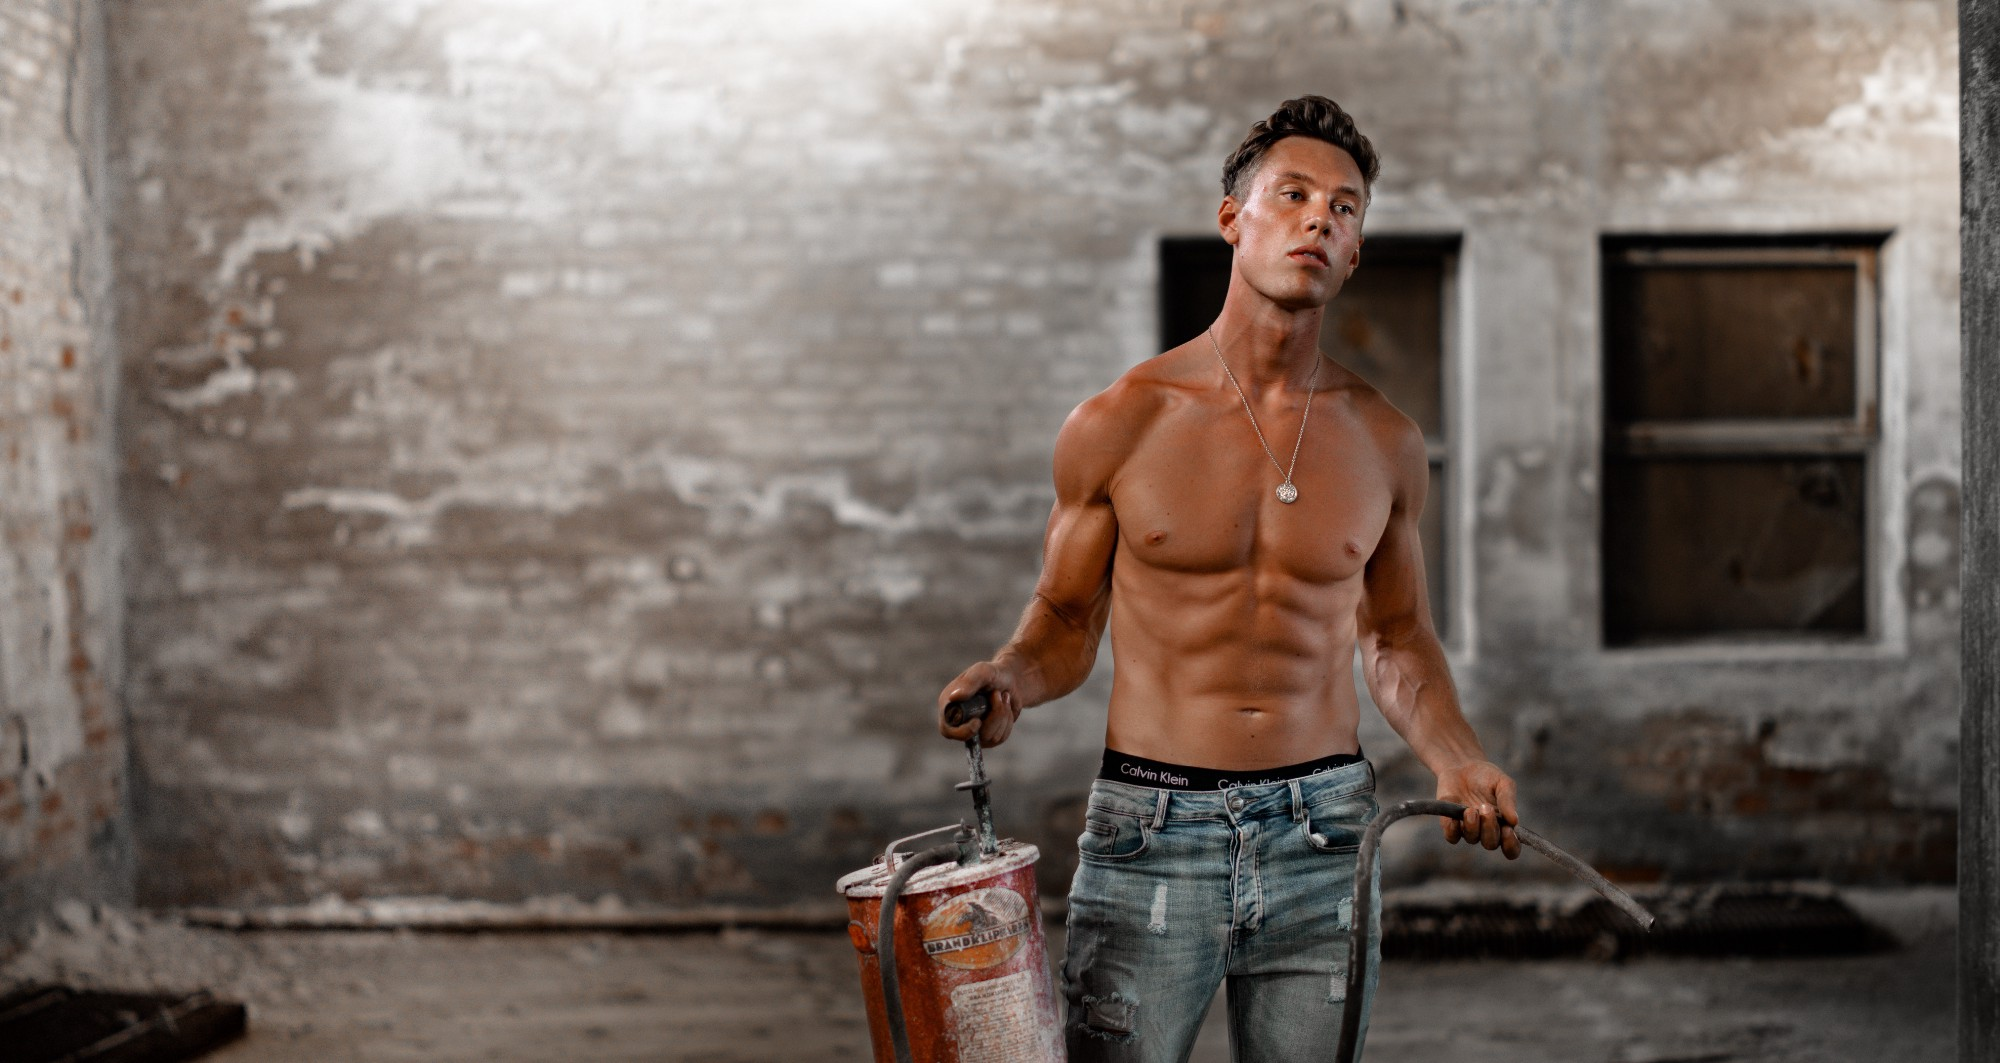 Shirtless tanned white man in jeans carrying a fire extinguisher